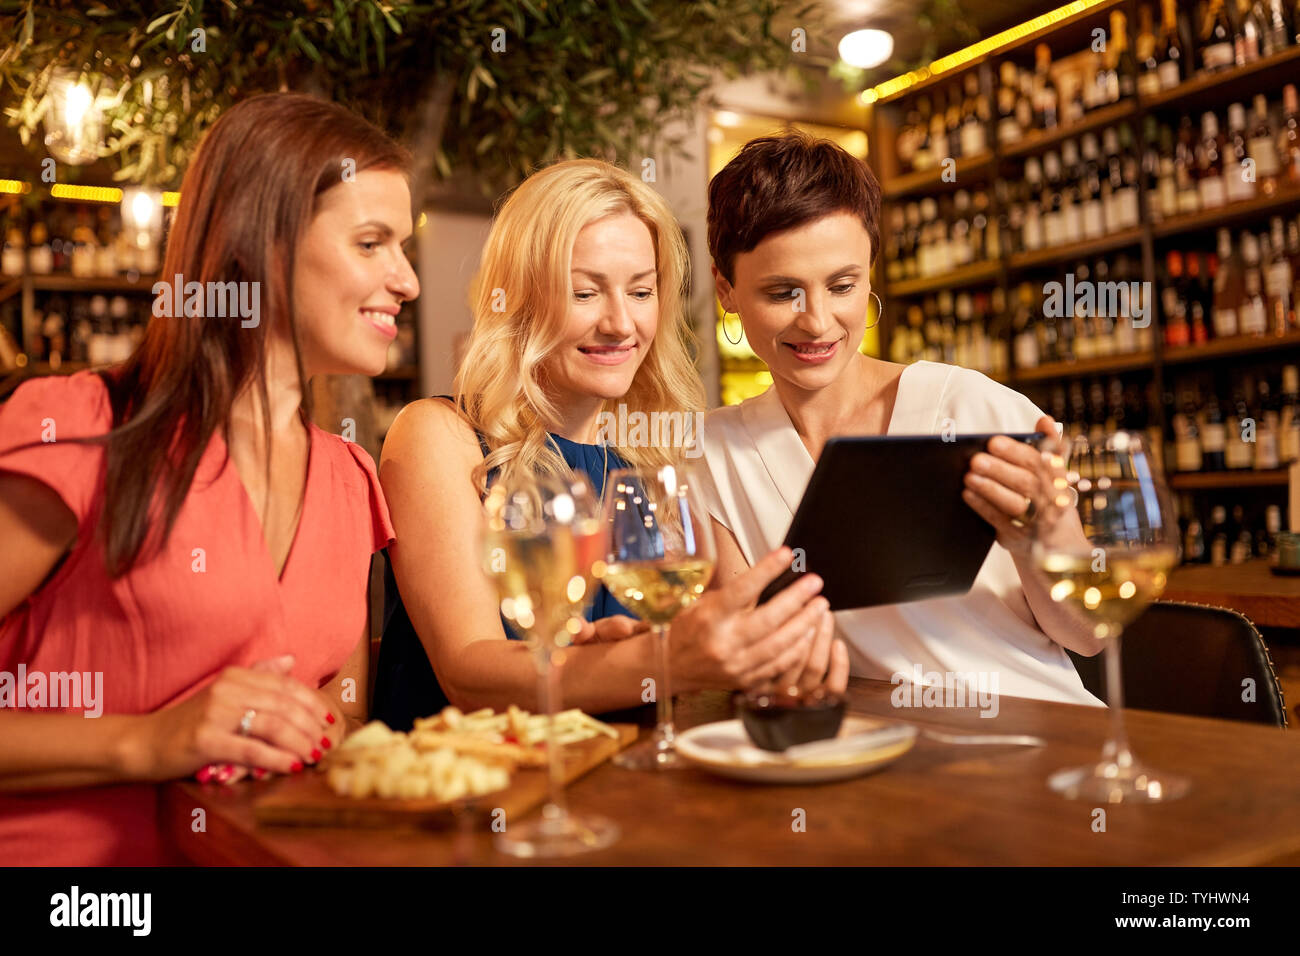 women with tablet pc at wine bar or restaurant - Stock Image